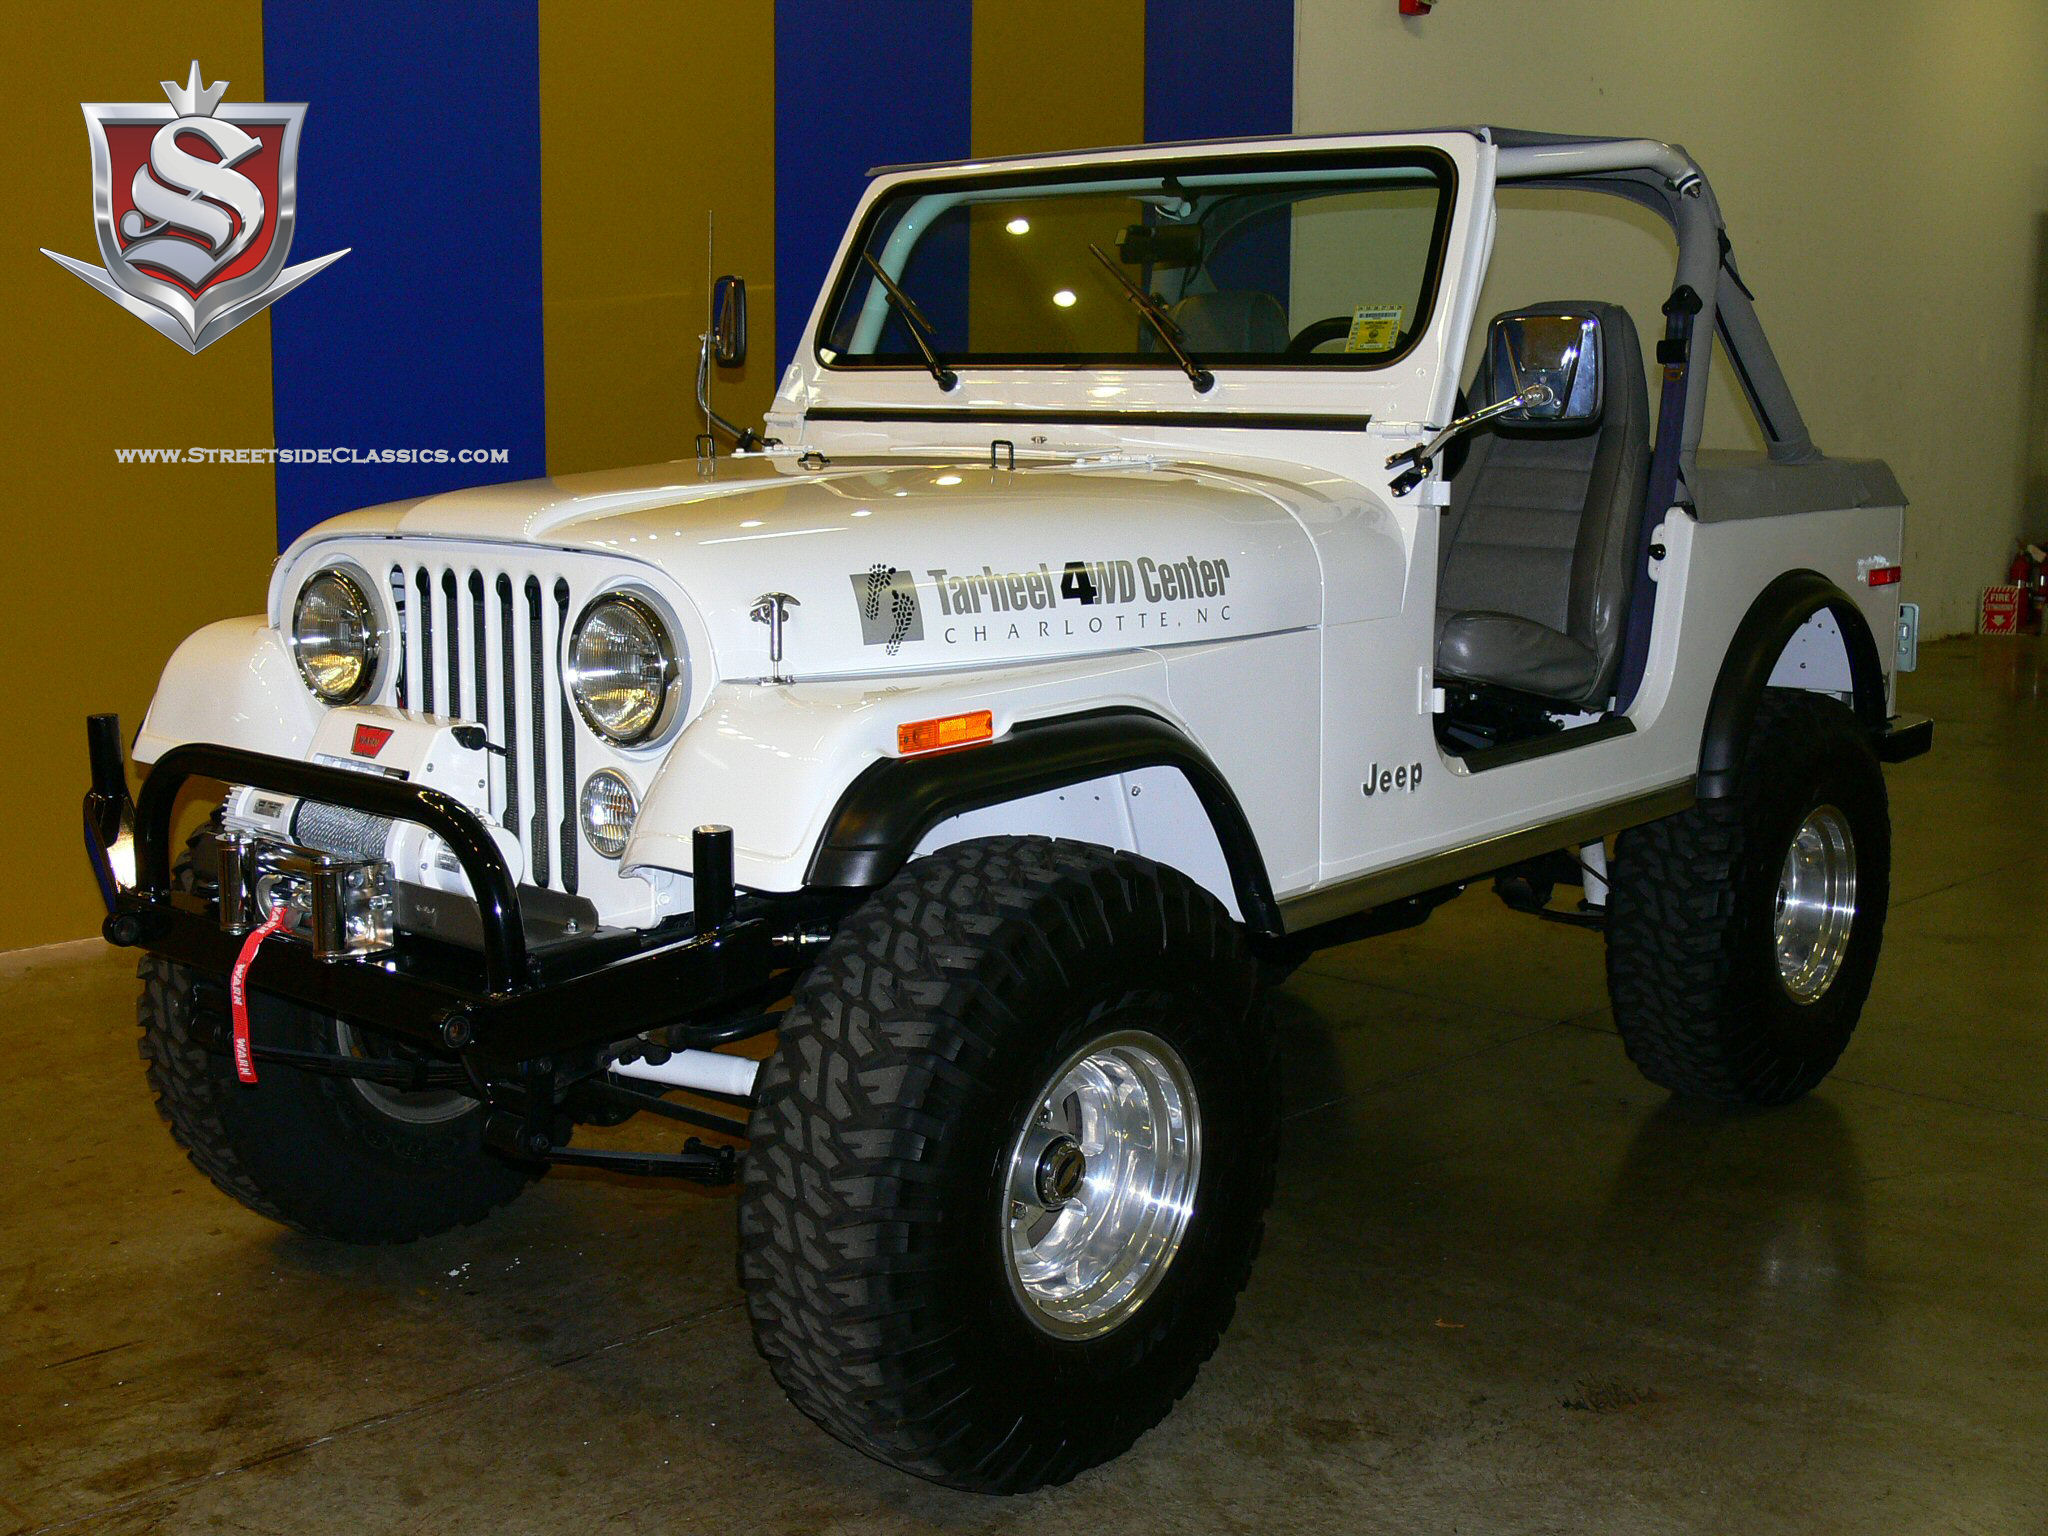 Jeep CJ7 picture 14 reviews news specs car